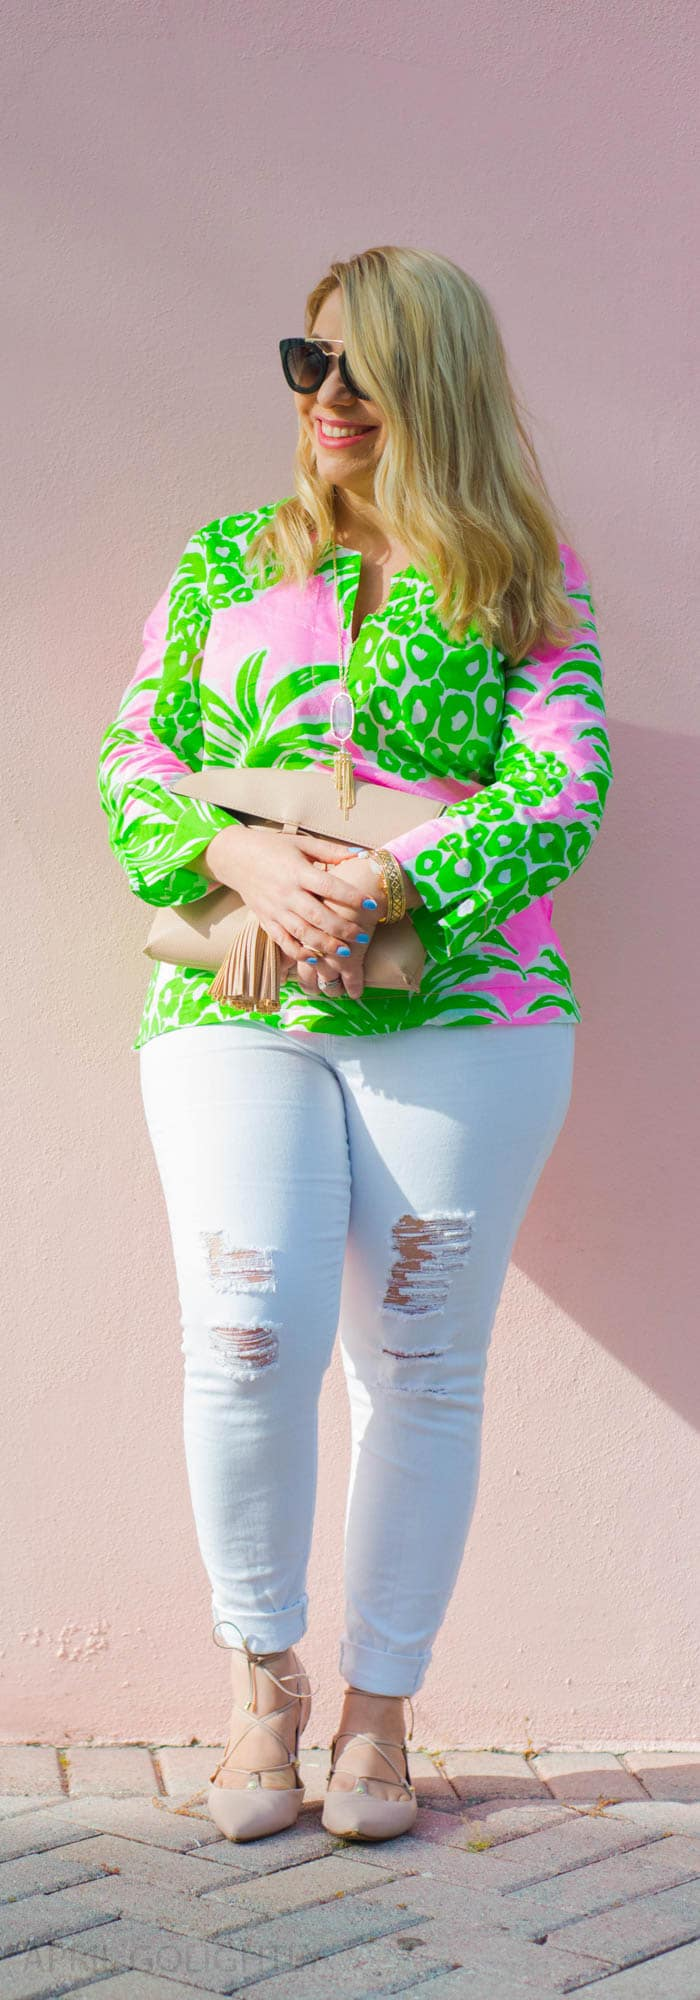 Cooler in Cotton Lilly Pulitzer Tunic Top and white jeans (1 of 1)-2